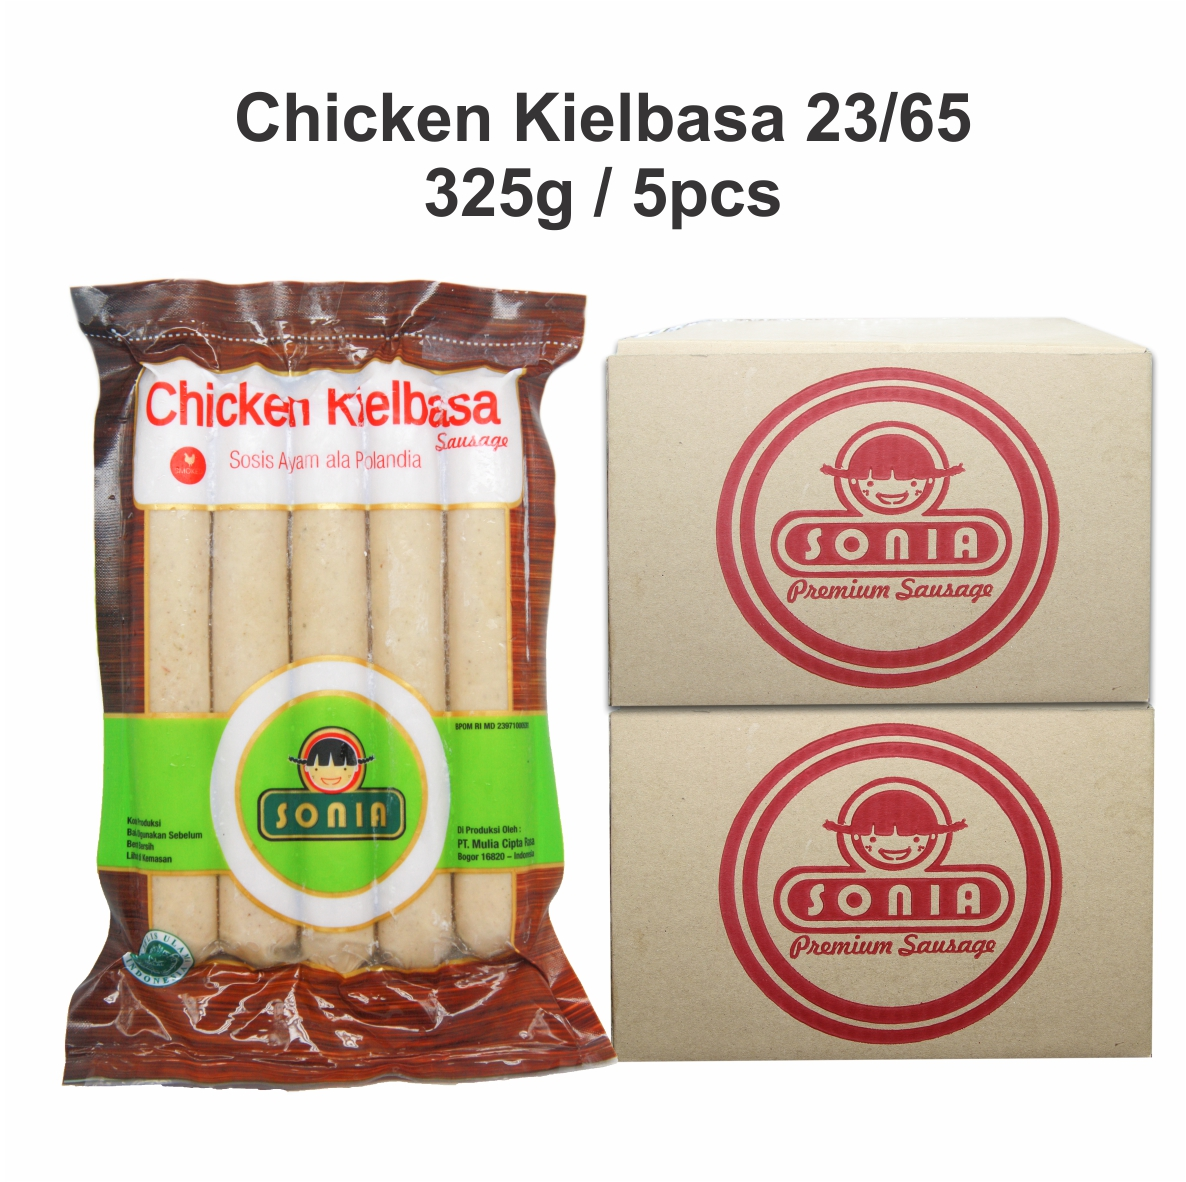 Chicken Kielbasa